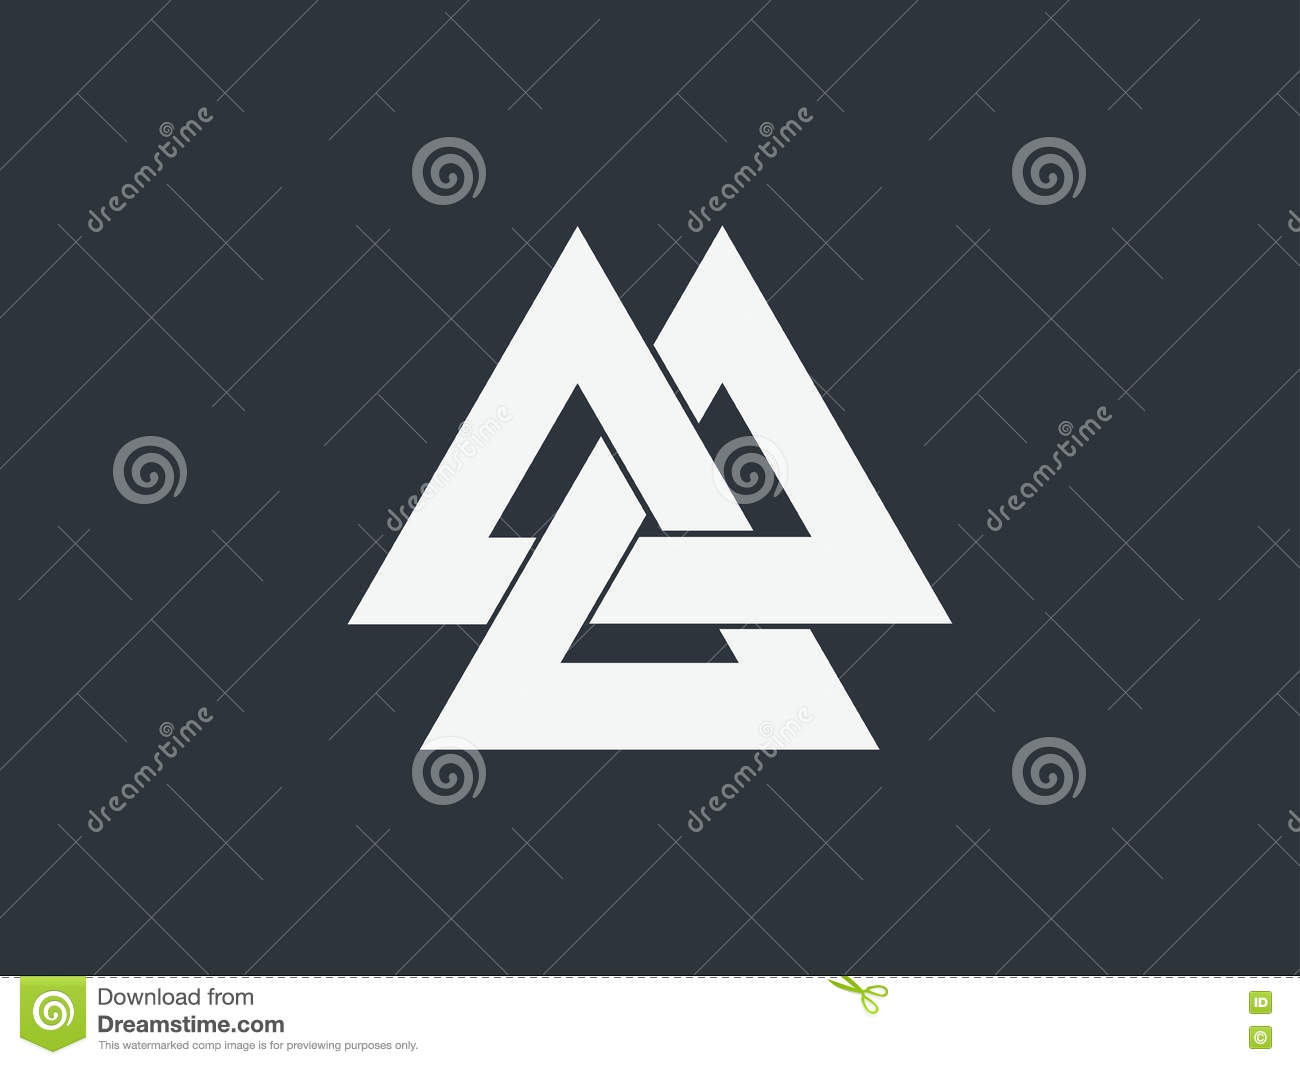 Valknut is a symbol of the worlds end of the tree yggdrasil sign valknut is a symbol of the world s end of the tree yggdrasil sign of the god odin it refers to the norse culture buycottarizona